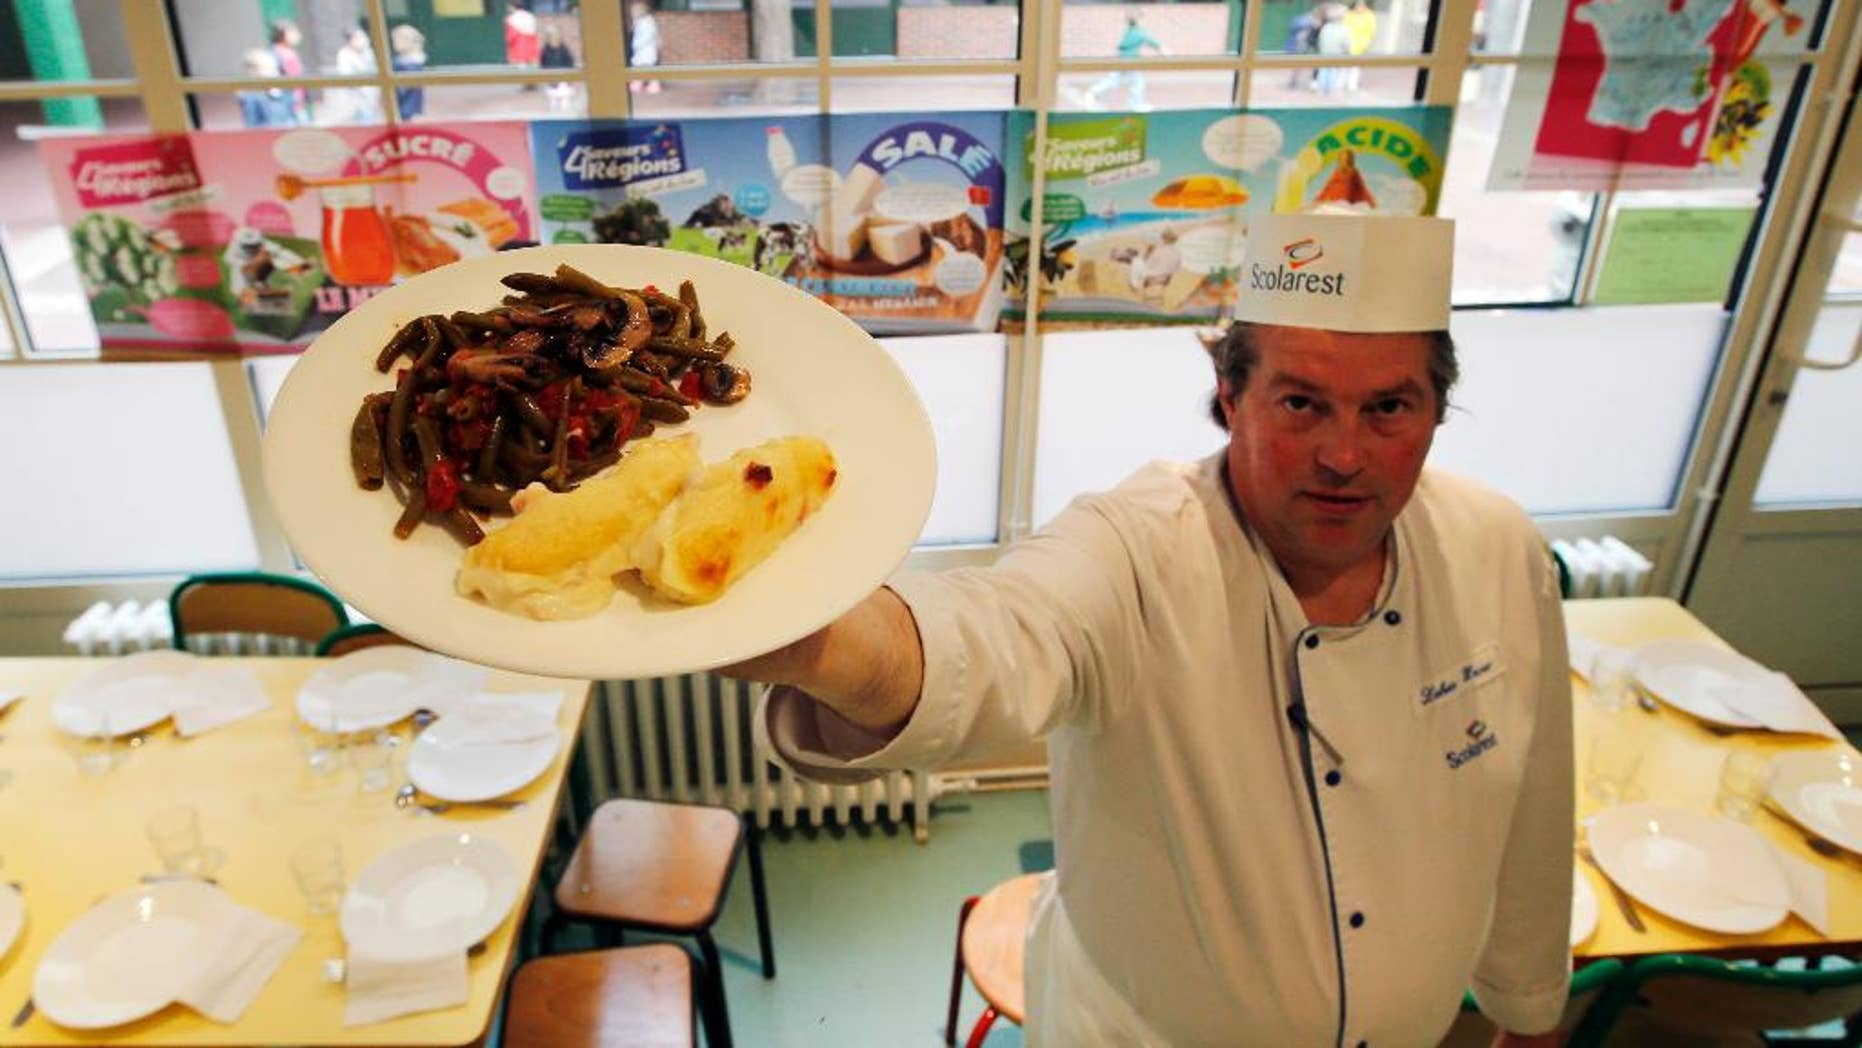 FOR STORY FRANCE SCHOOL LUNCHES - FILE - In this May 6, 2014 file photo, French chef Xavier Lebeau poses with a plate of Quenelles de Brochet (pike fish) with Green Haricot beans and Champignons de Paris (Paris mushrooms), at the Saint Pierre de Chaillot school in Paris, France. France has been grappling with how to reconcile religious beliefs with secular values when it comes to pork in school lunches, with one lawmaker's solution: vegetarian meals. (AP Photo/Francois Mori, File)